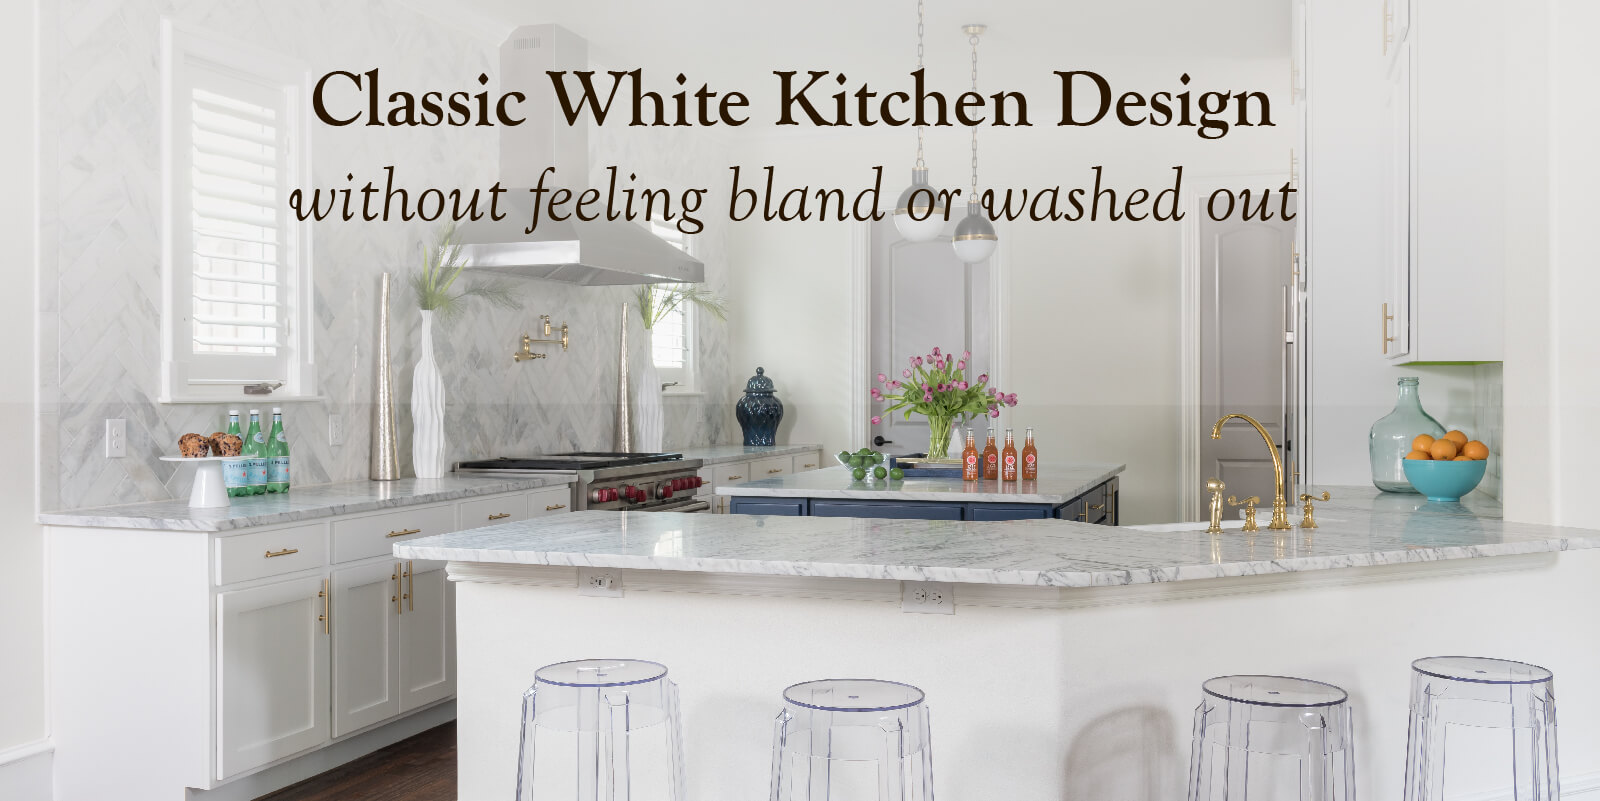 3 Simple Ways to Liven Up your White Kitchen Cabinets